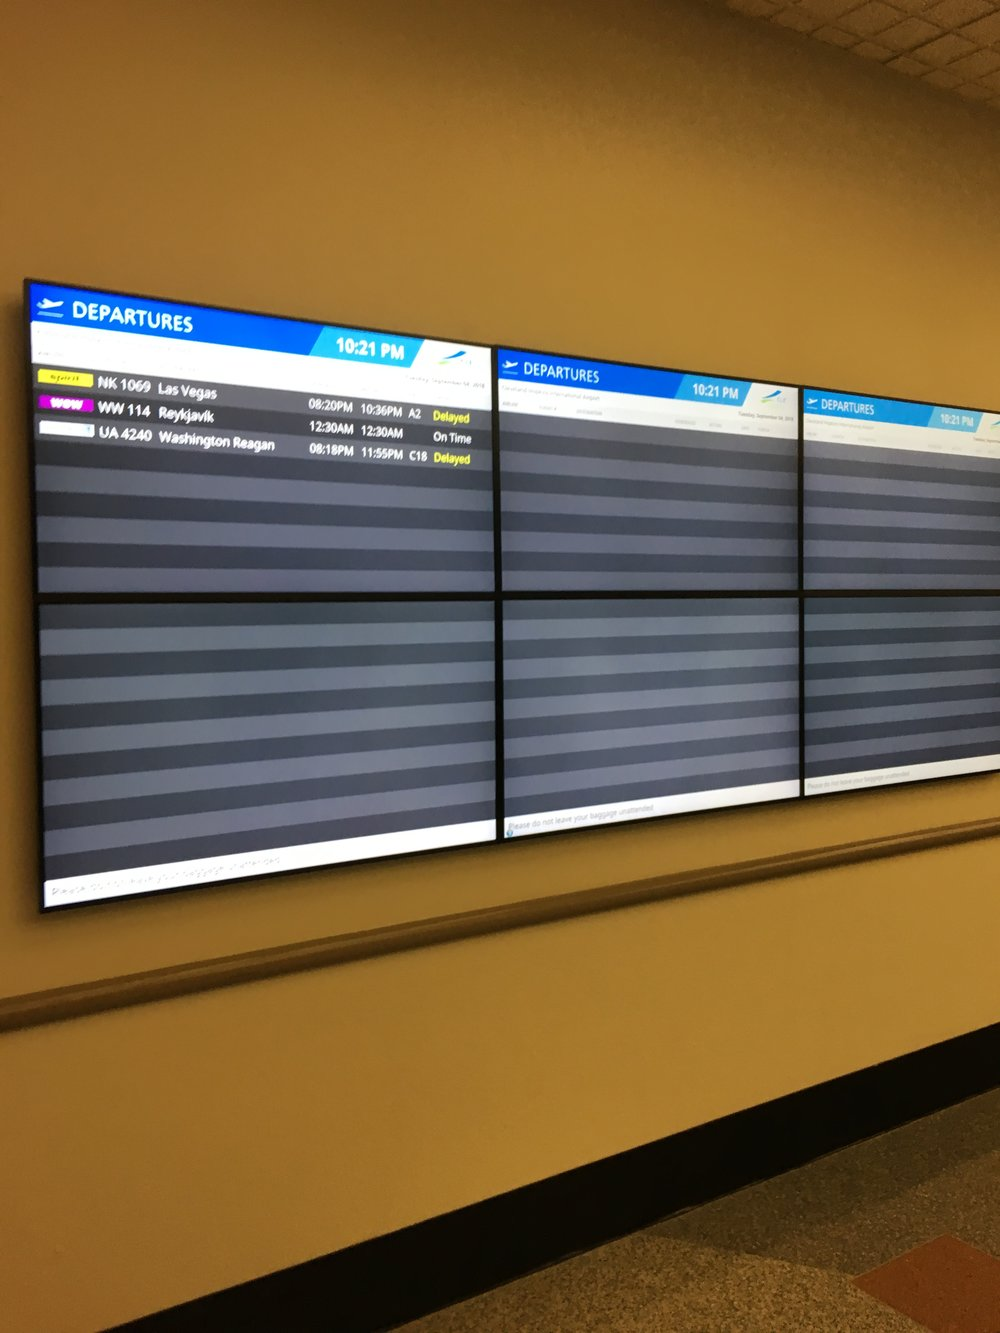 The Cleveland departure board when I arrived! Eliminates delays on the airport's end!